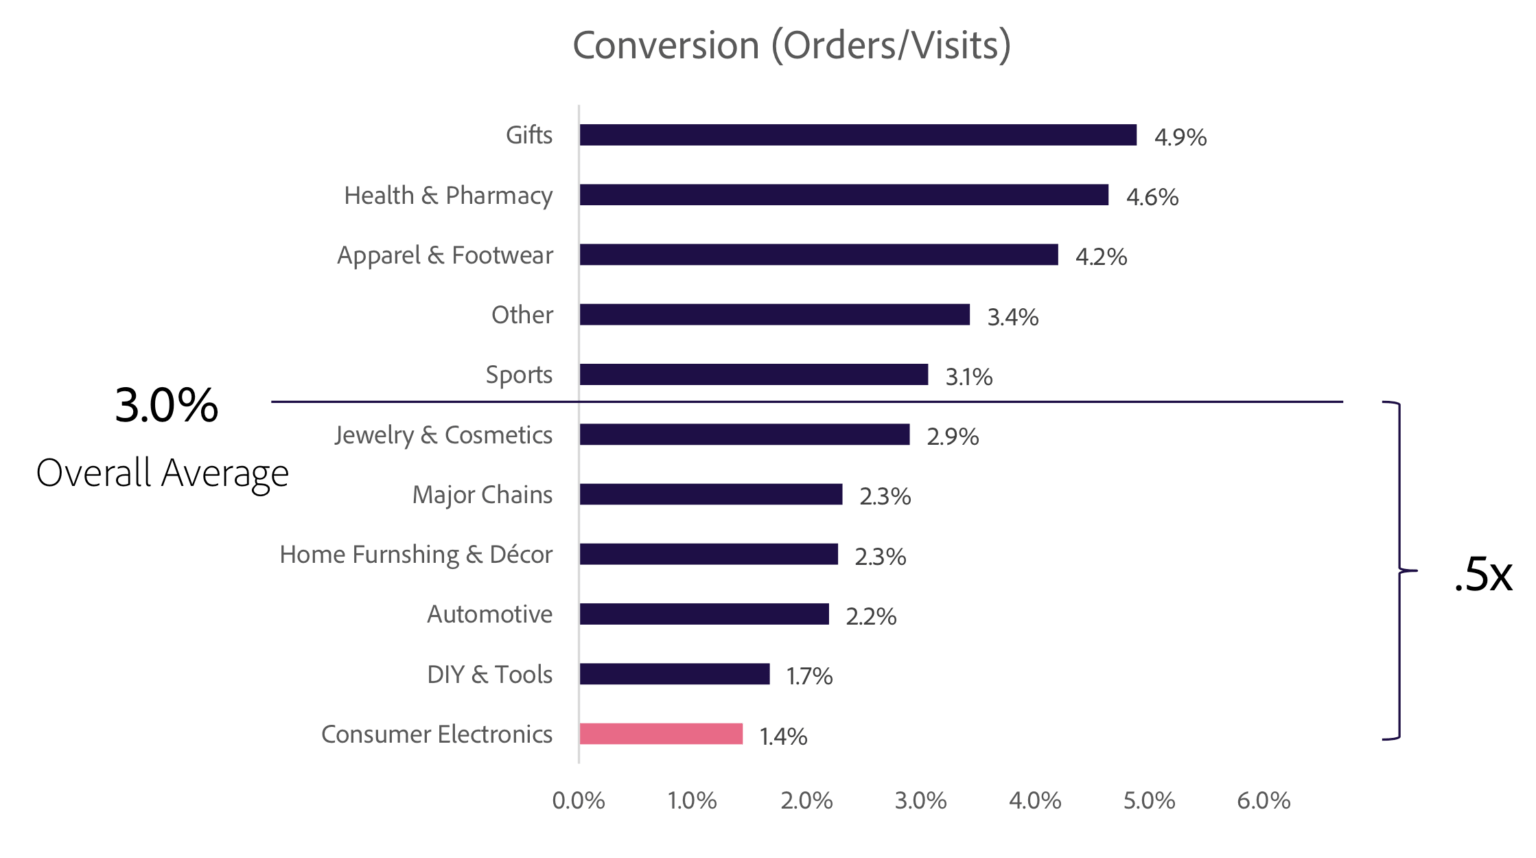 Conversion rate statistics orders and visits